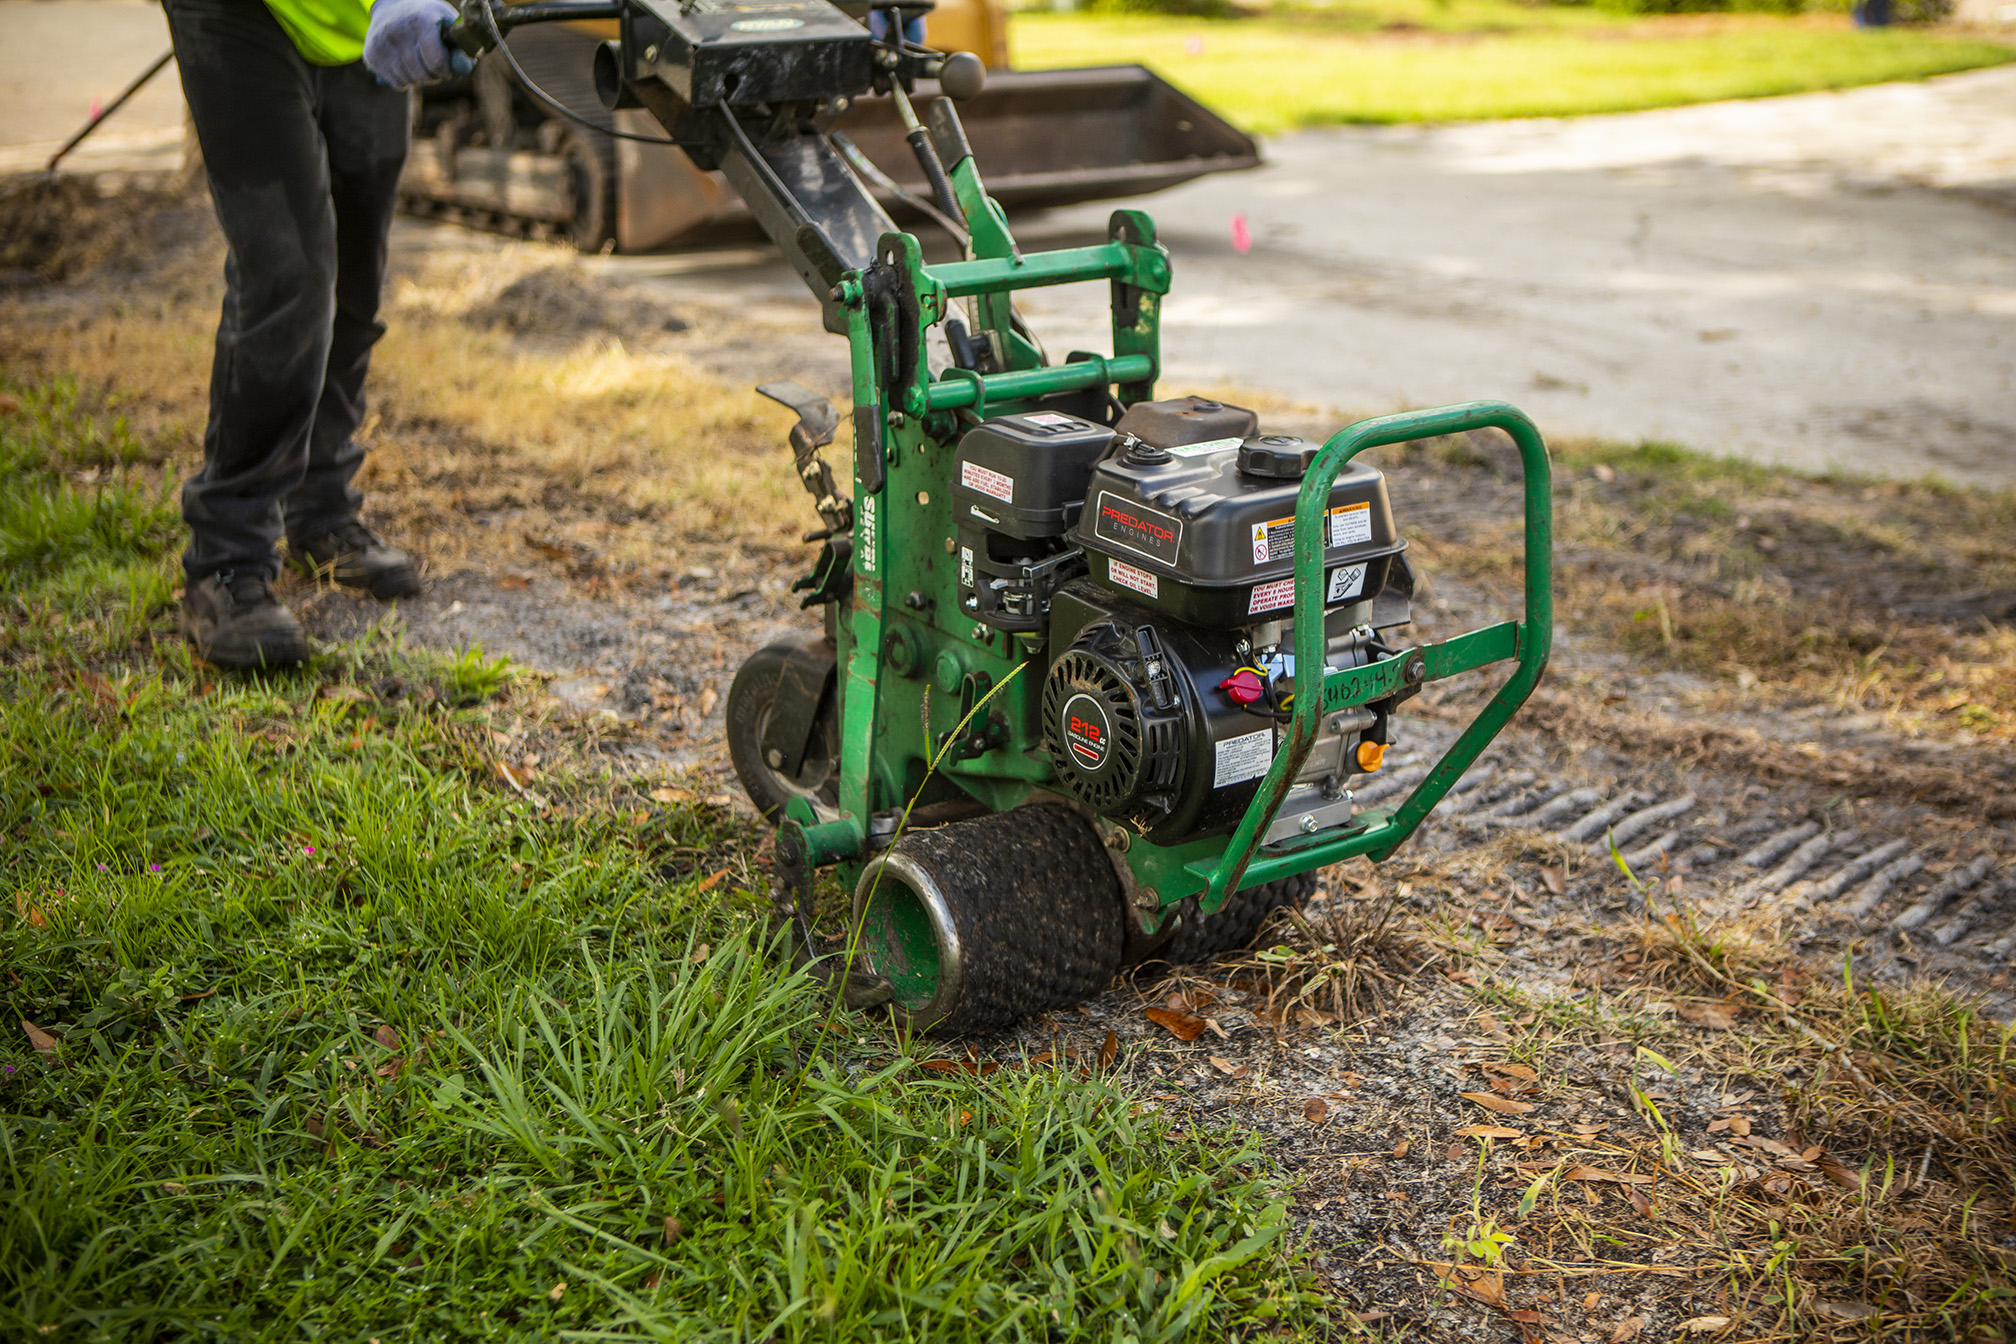 sod cutter being used to remove sod before new sod installation